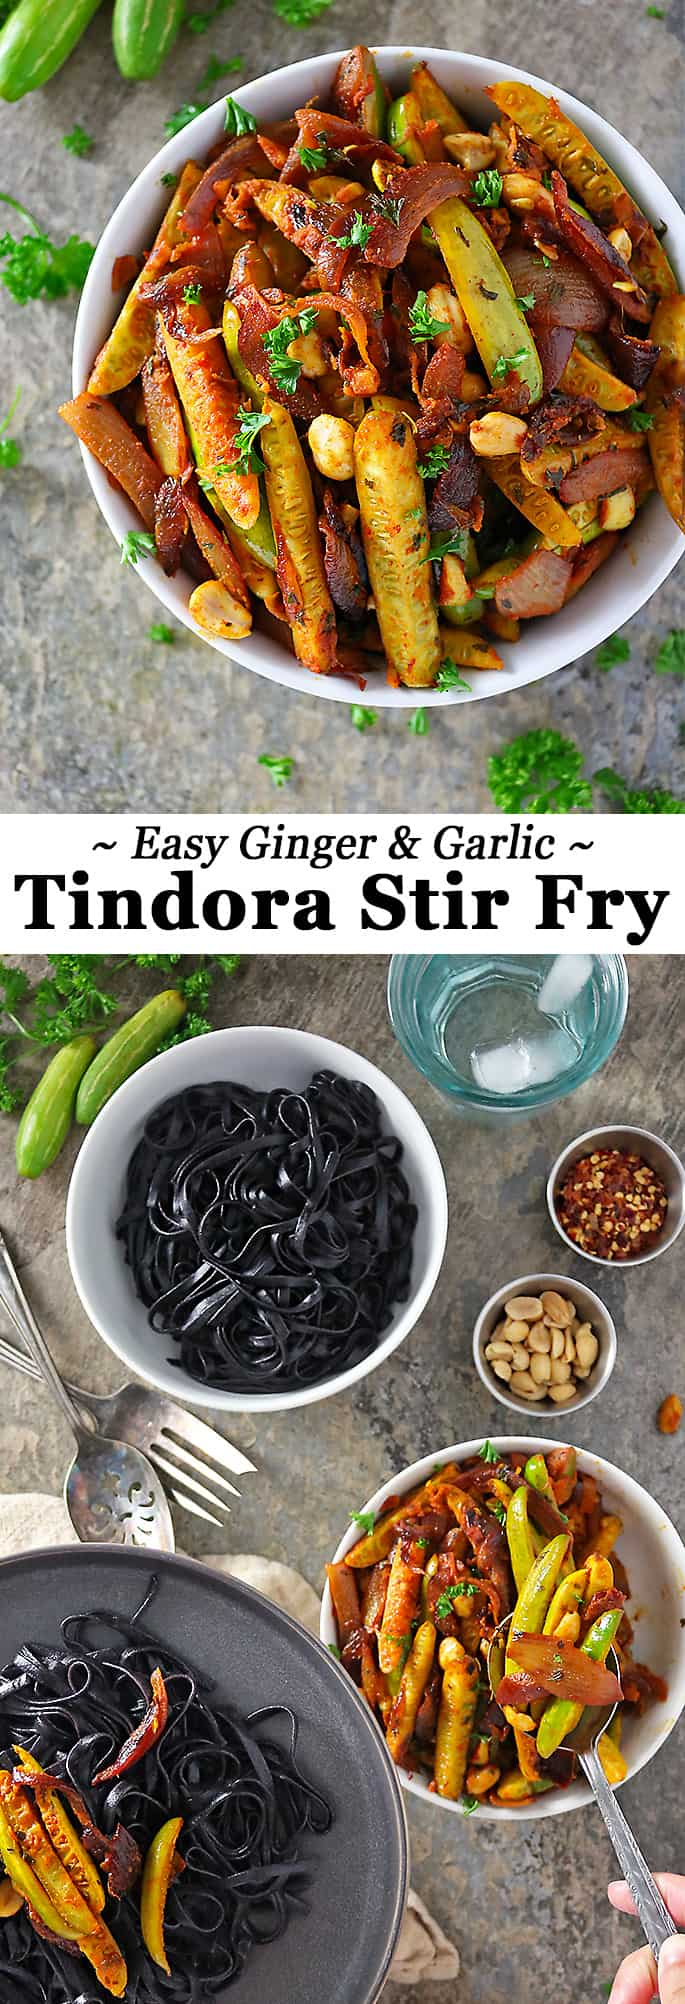 Gently spiced with smoked paprika, turmeric and coriander, this Ginger Garlic Tindora Stir Fry is so easy to make ~ and, if will be a healthier and delicious vegan/vegetarian meal option your family and friends are sure to love.